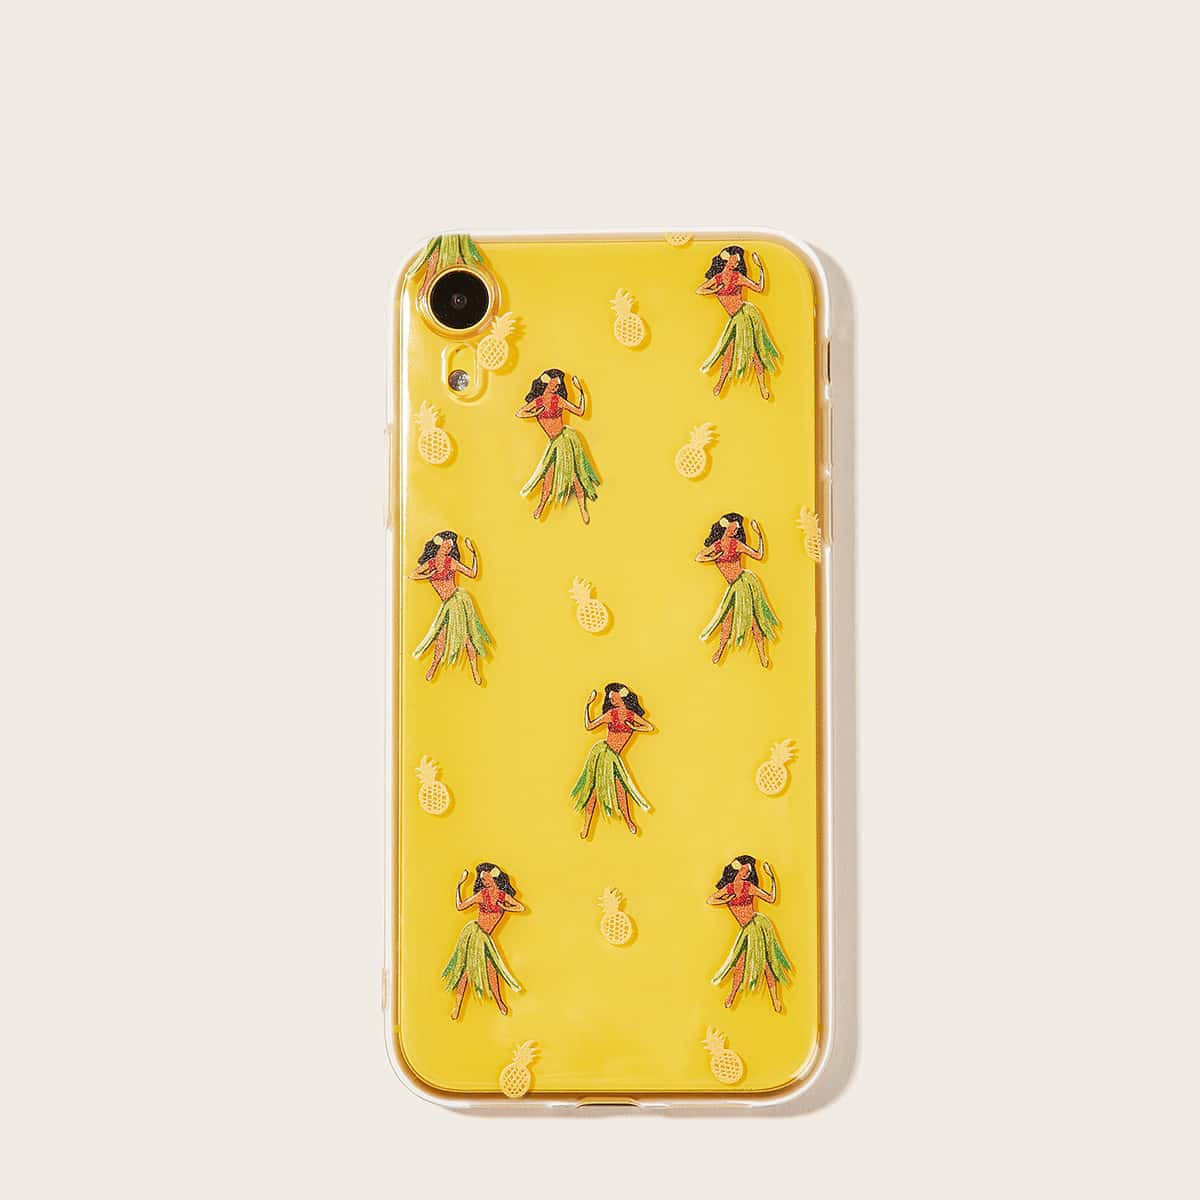 Transparente iPhone Hülle mit Ananas & Lady Muster